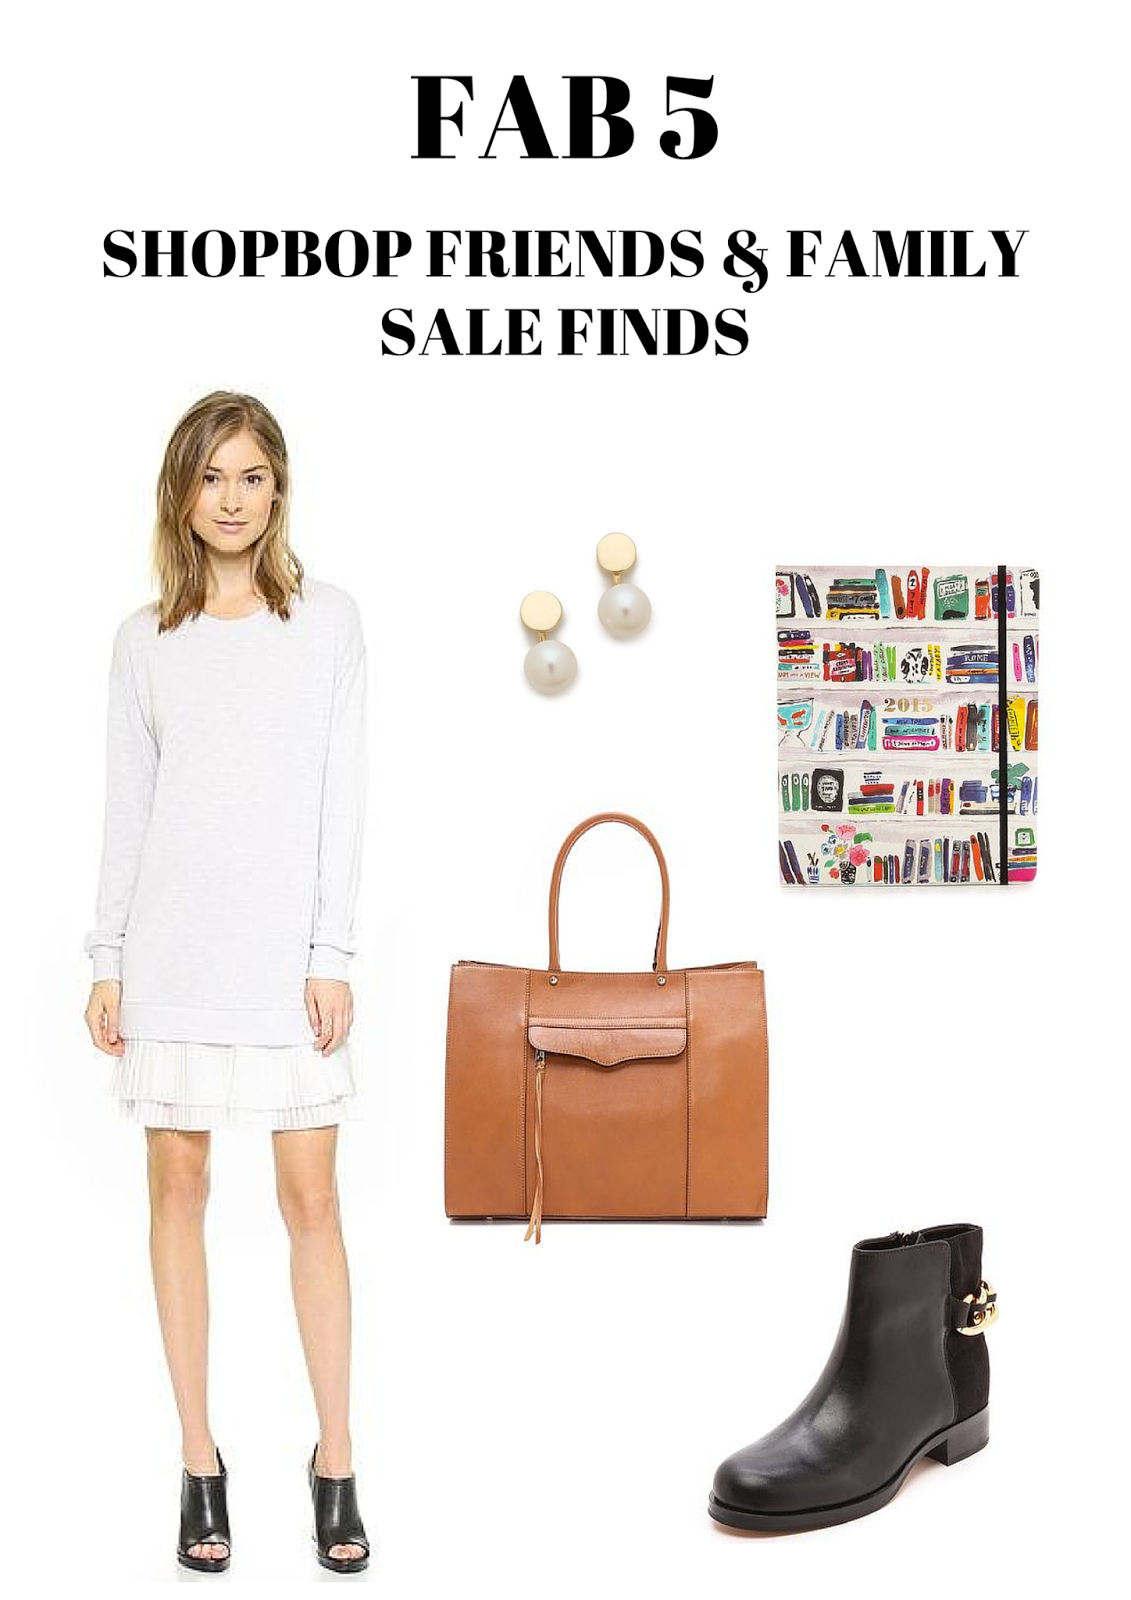 Fab 5, Shopbop, Friends & Family Sale